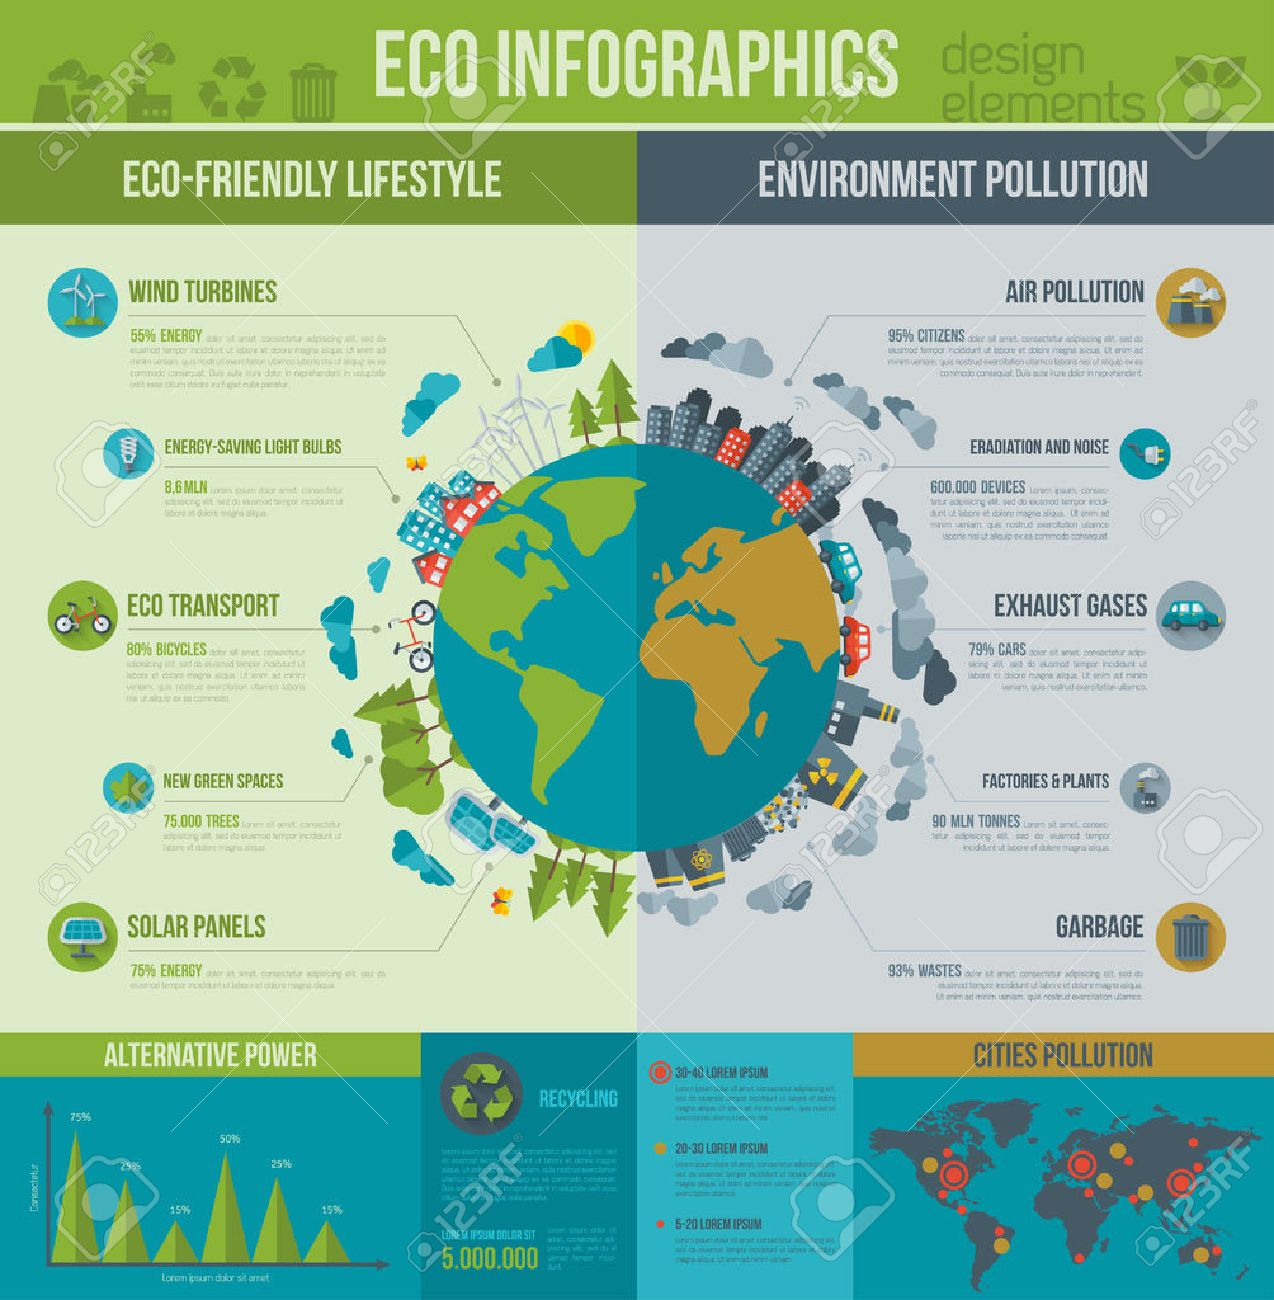 Ecology Infographics. Vector illustration. Environmental template with flat icons. Environmental protection and Pollution. Go green. Save the planet. Earth Day. Creative concept of Eco Technology. - 53902001